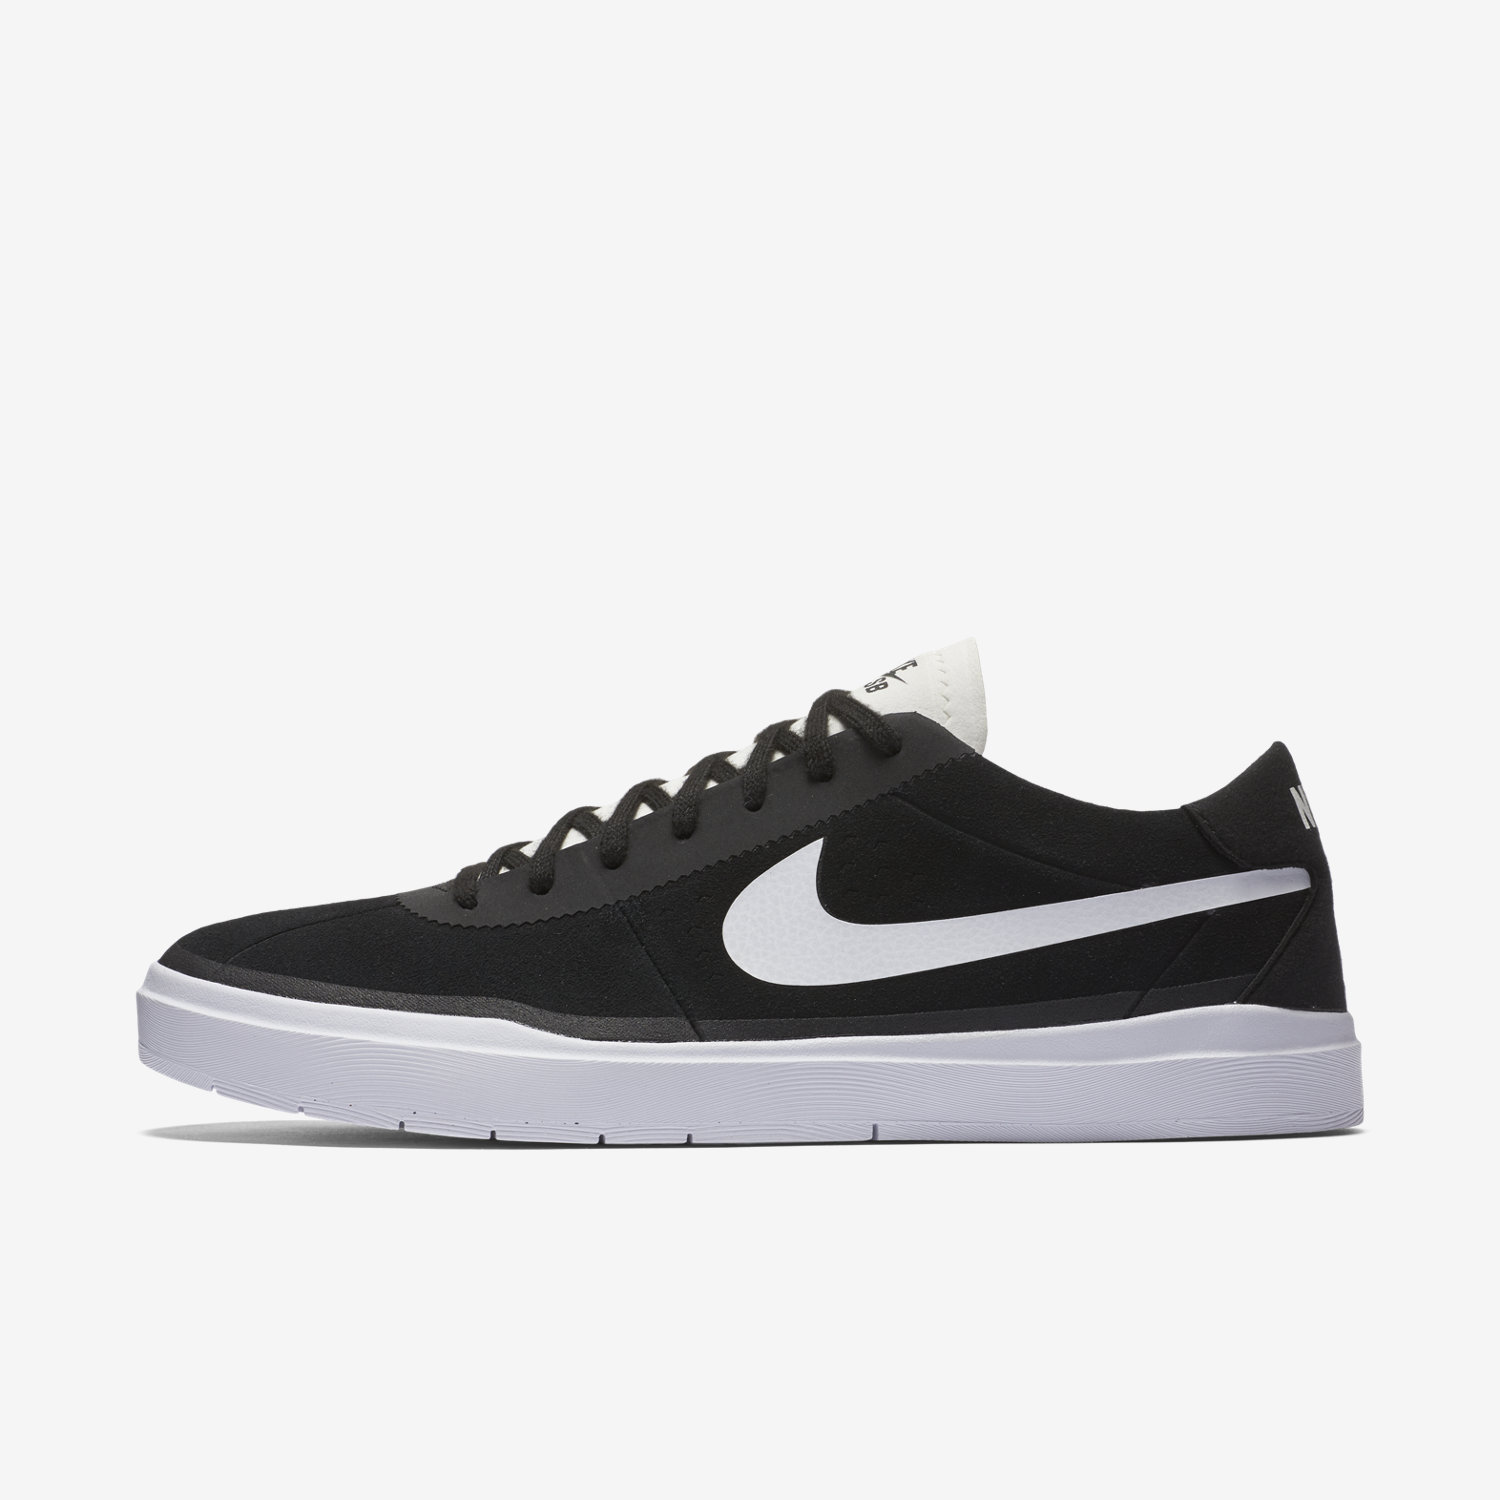 Nike skate shoes – Branded and high quality shoes